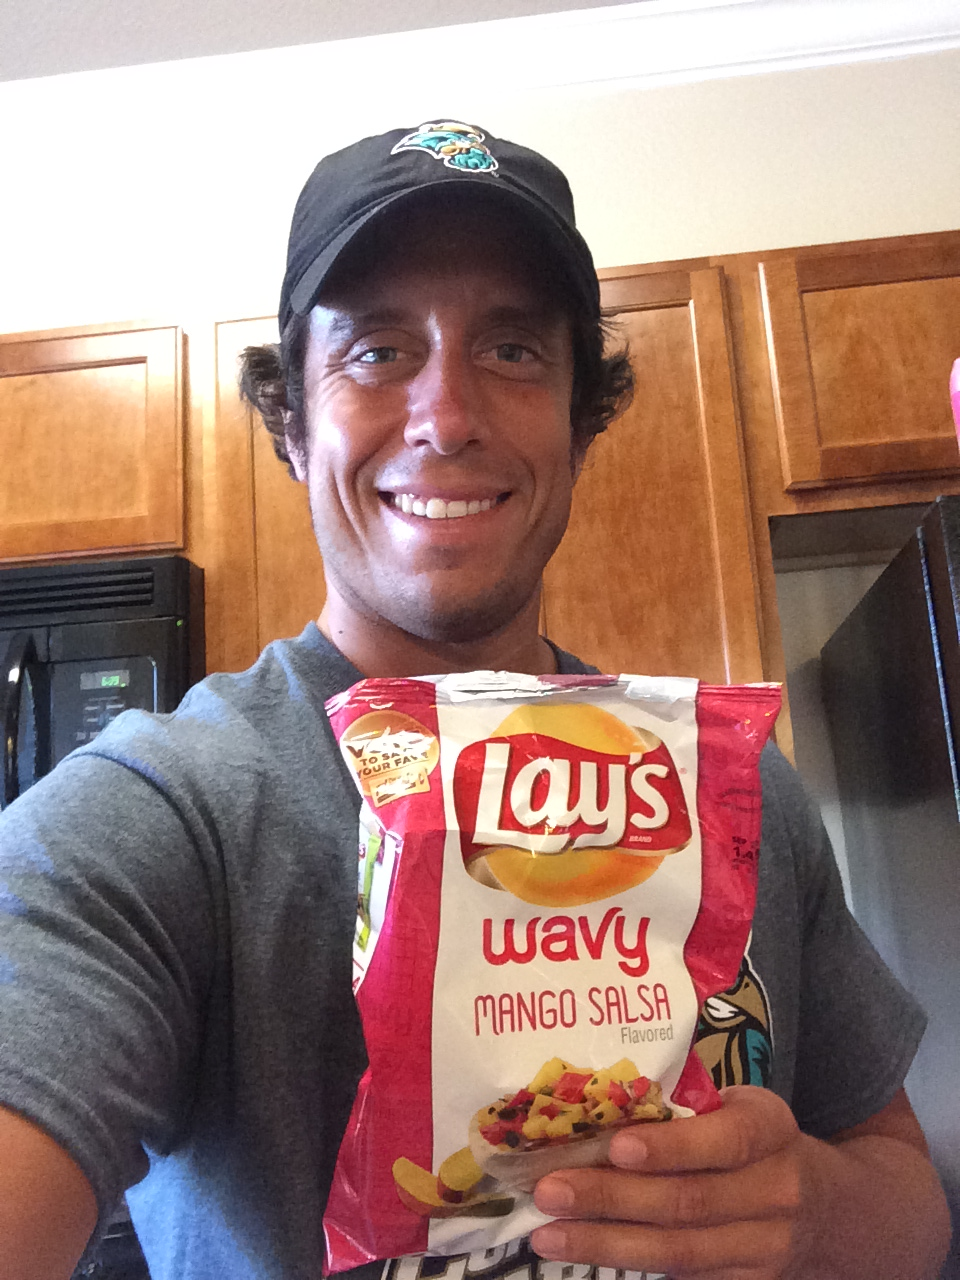 In the end my favorite chip in the #DoUsAFlavor promotion was the Wavy Mango Salsa flavor.